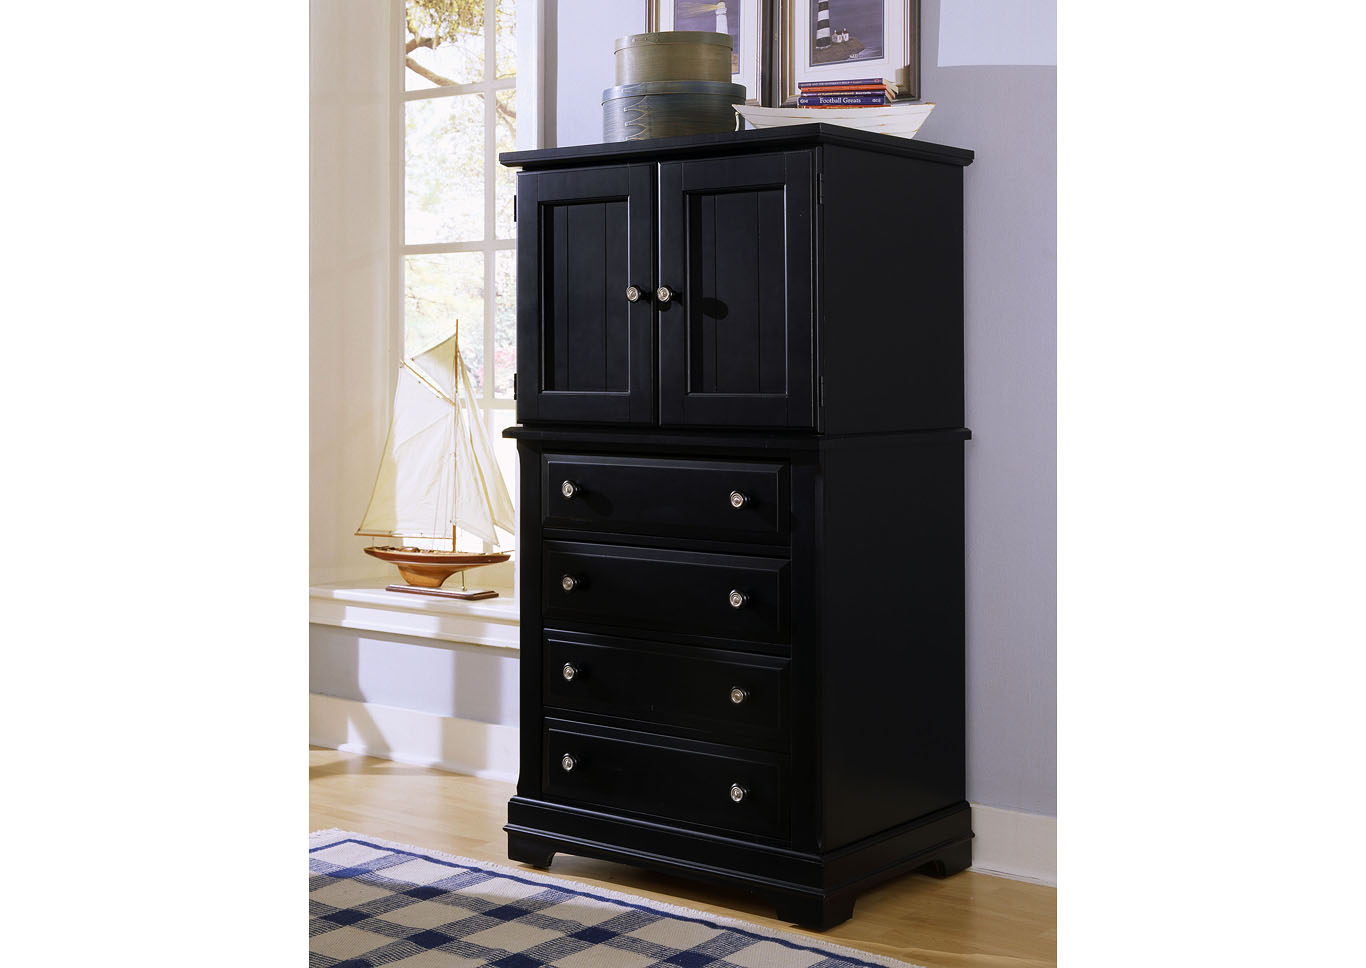 Cottage Black Vanity Chest,Vaughan-Bassett